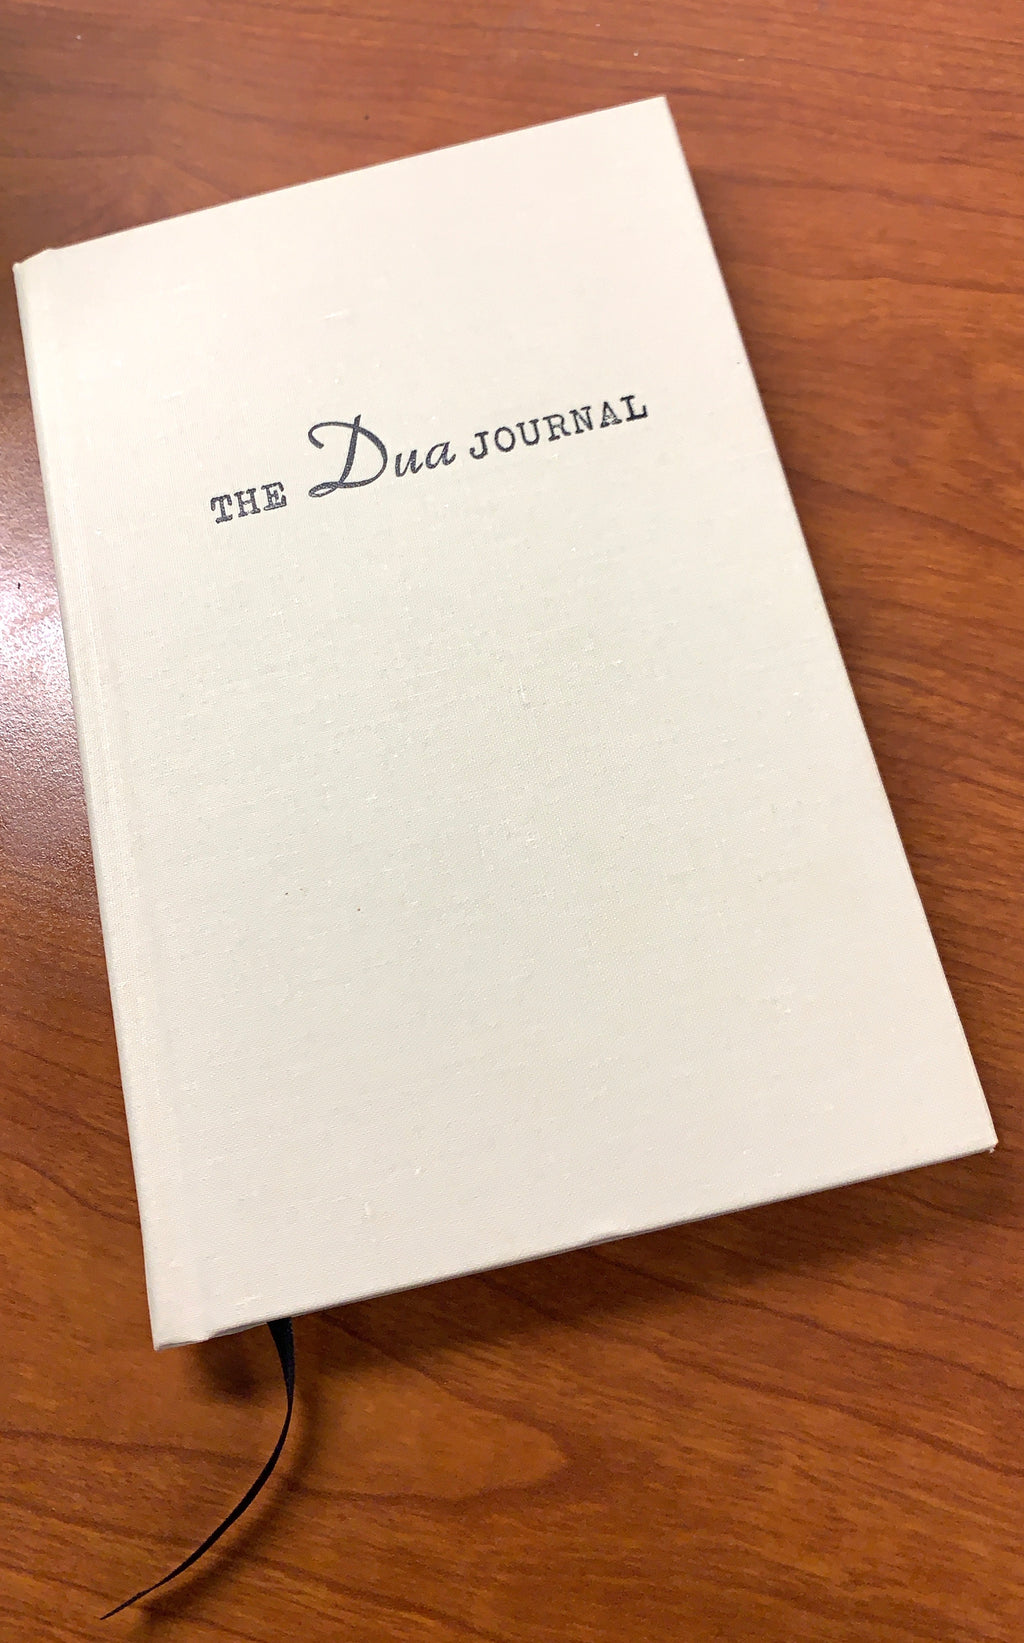 The Dua Journal